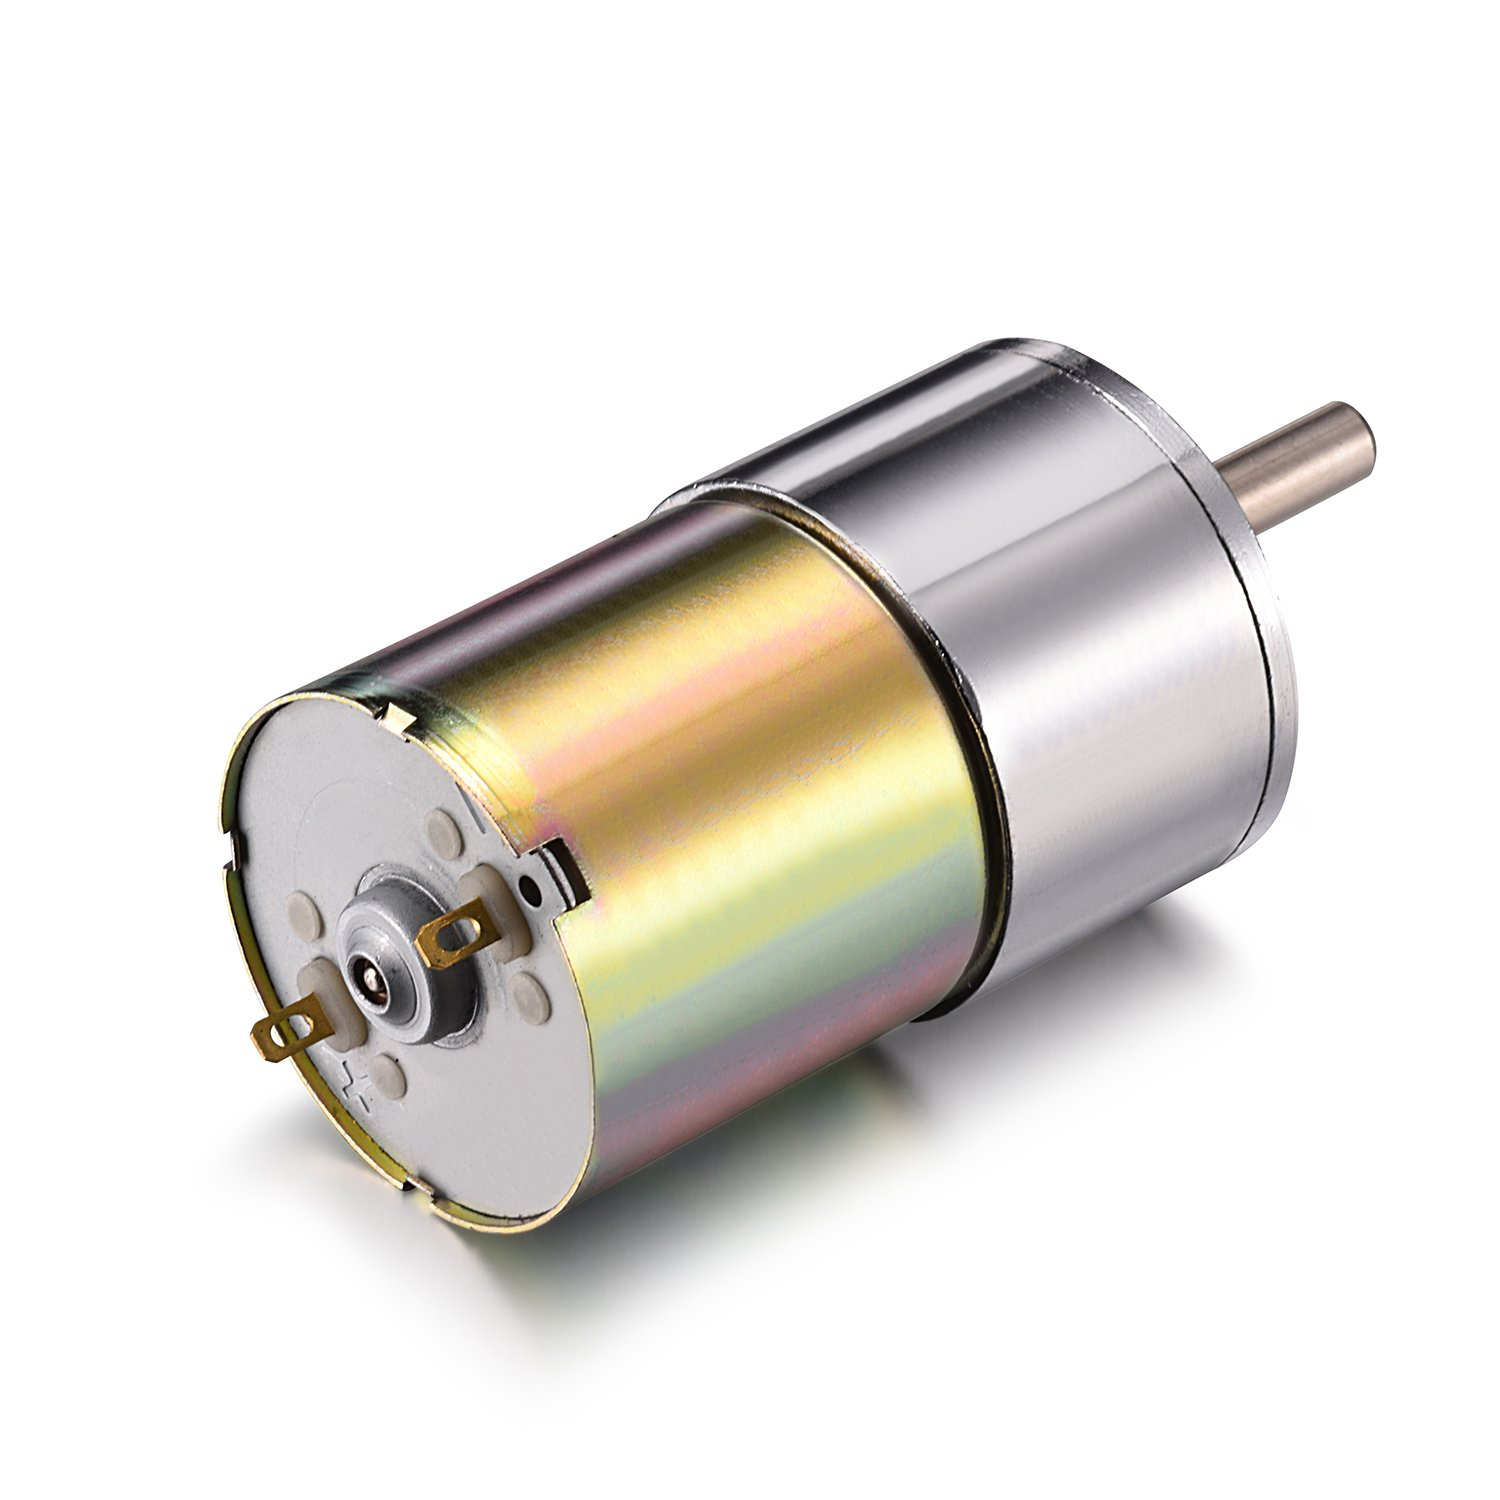 uxcell 12V DC 120RPM Gear Motor High Torque Electric Micro Speed Reduction Geared Motor Eccentric Output Shaft